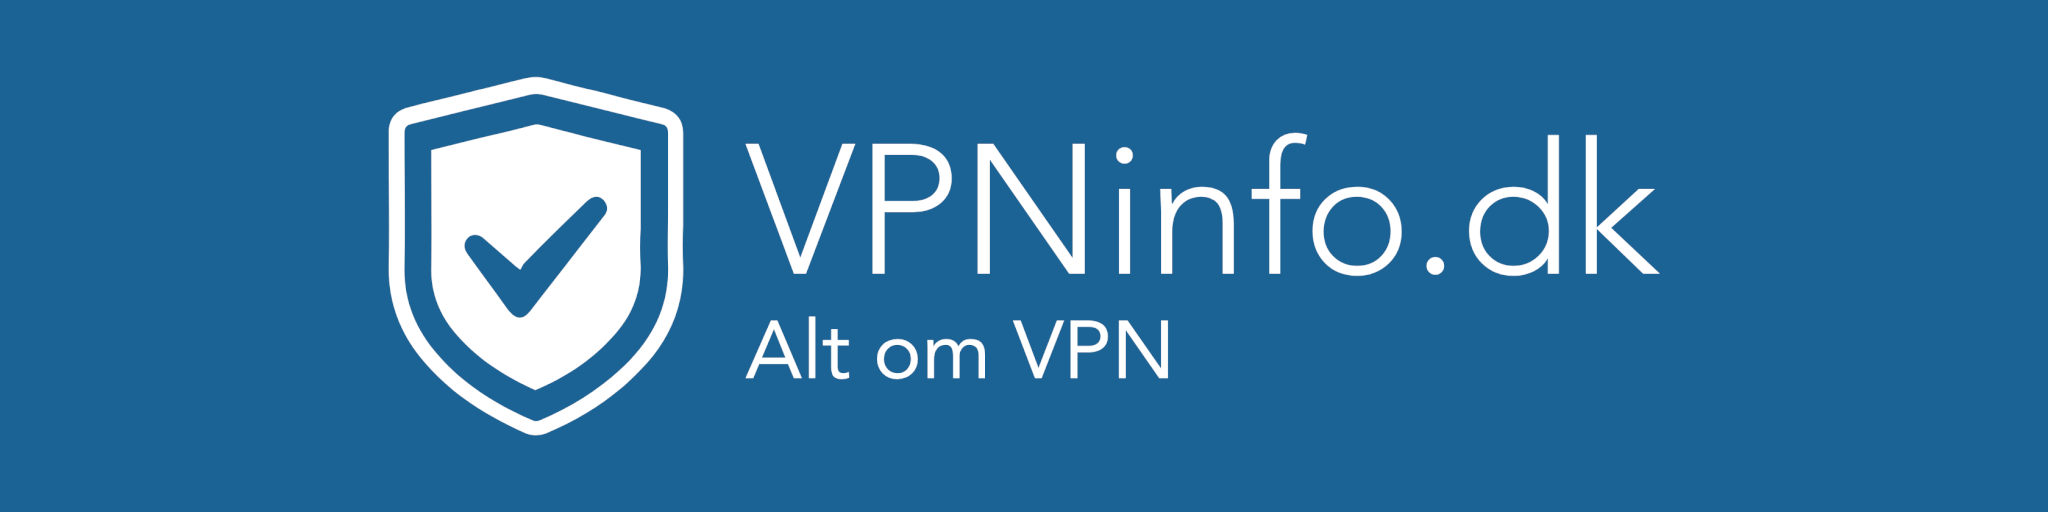 cheaper Netflix with VPN - Save up to 50% • VPNinfo dk